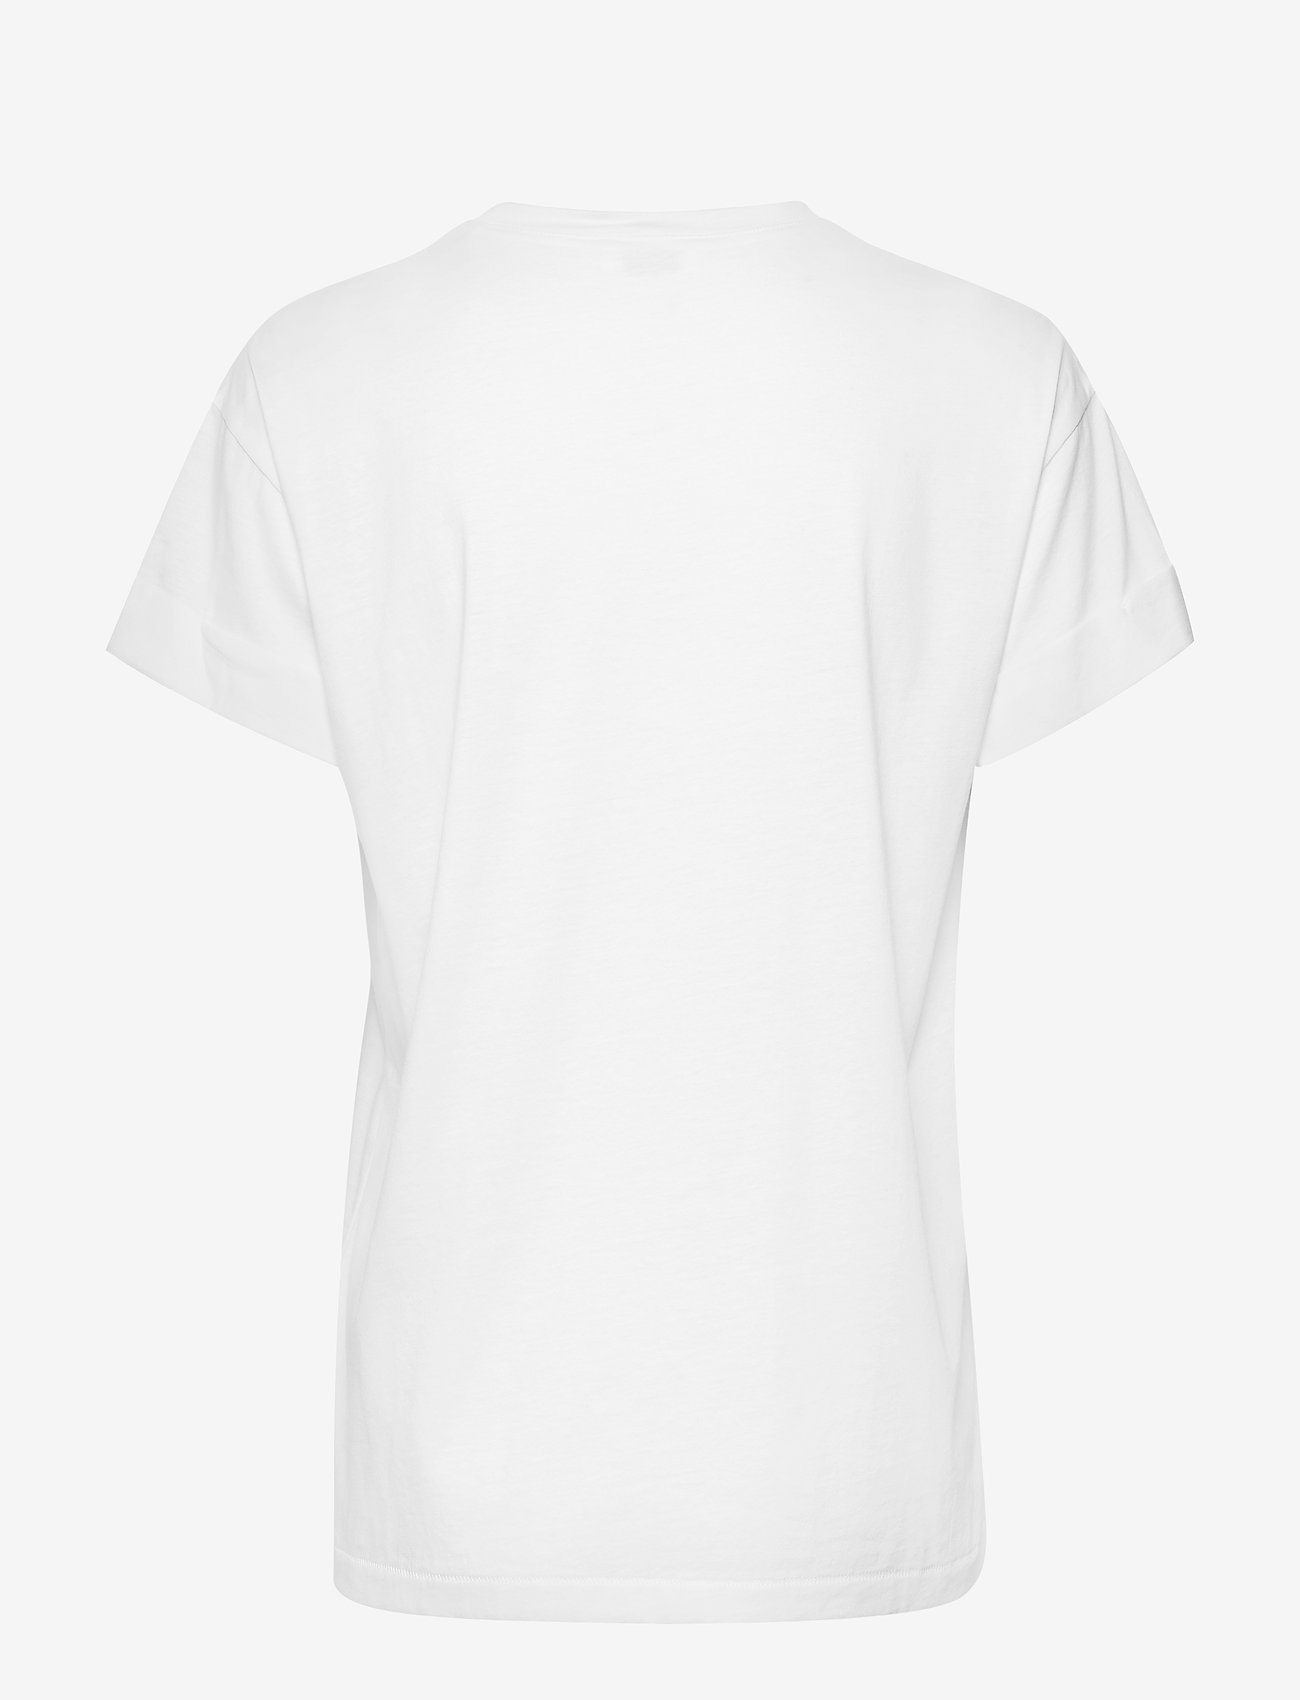 Marvel T-shirt (White) - Notes du Nord mw2EOP